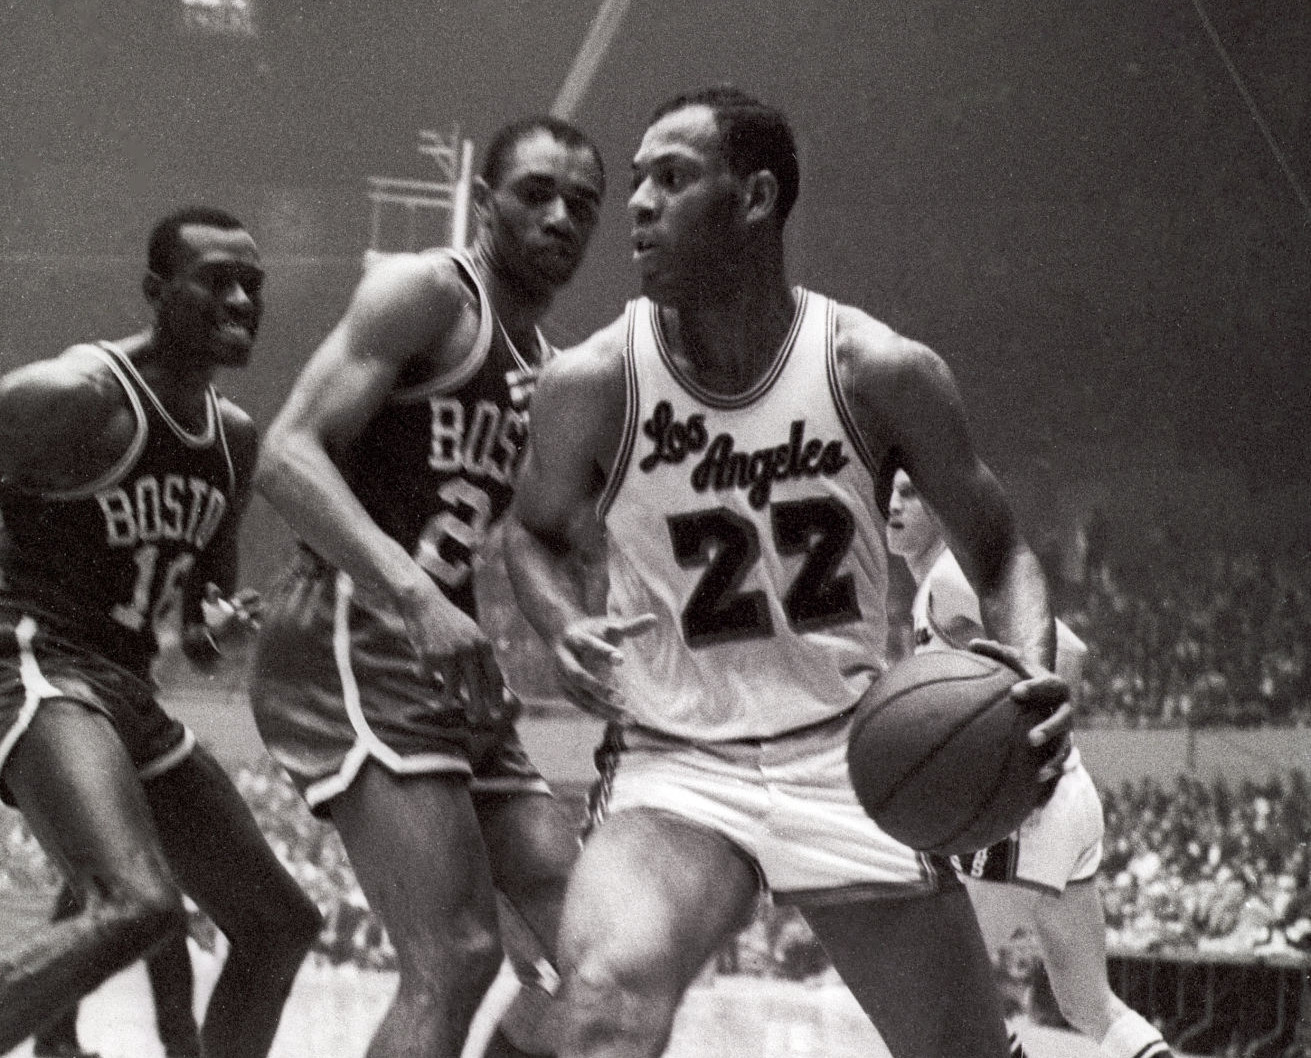 Elgin Baylor vs. Boston Celtics